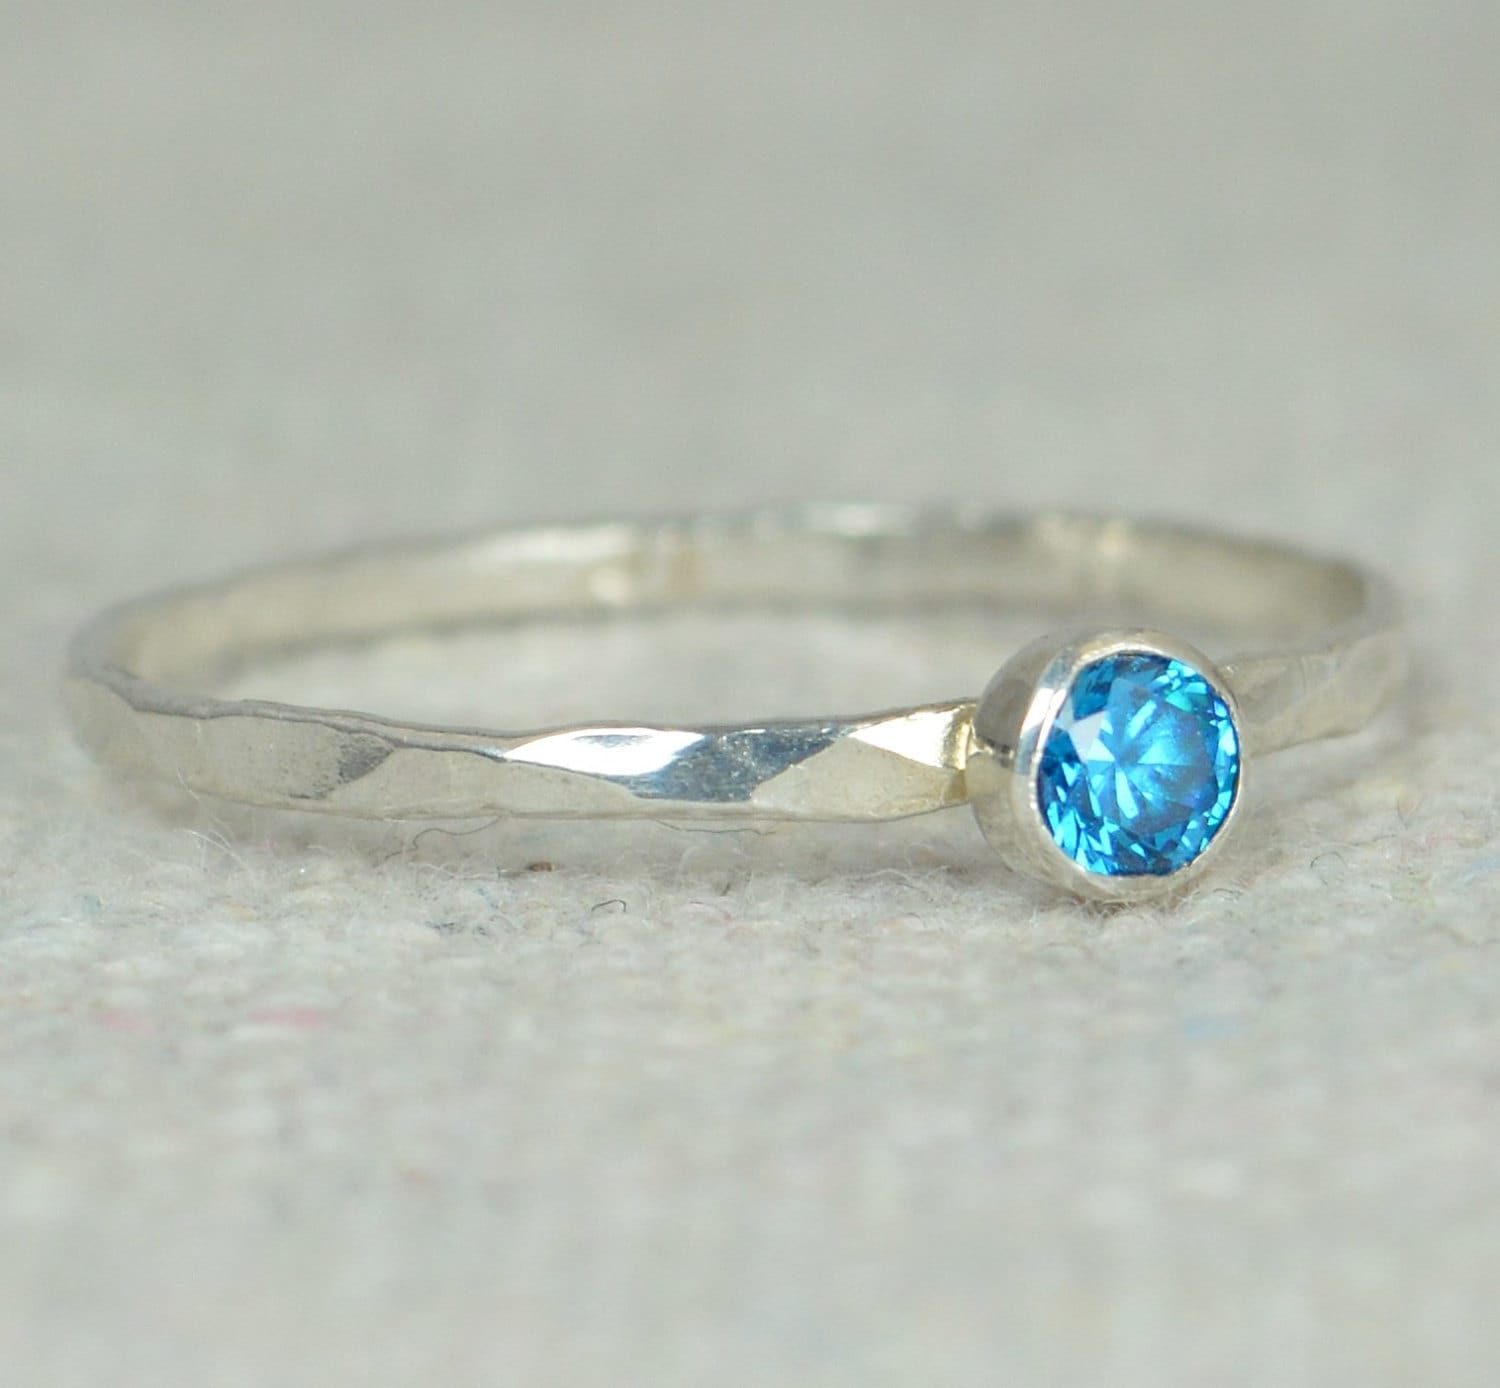 in row rings set december birthstone princess blue h and topaz swiss i si two ring white gold channel cut diamond engagement sleek gemstone